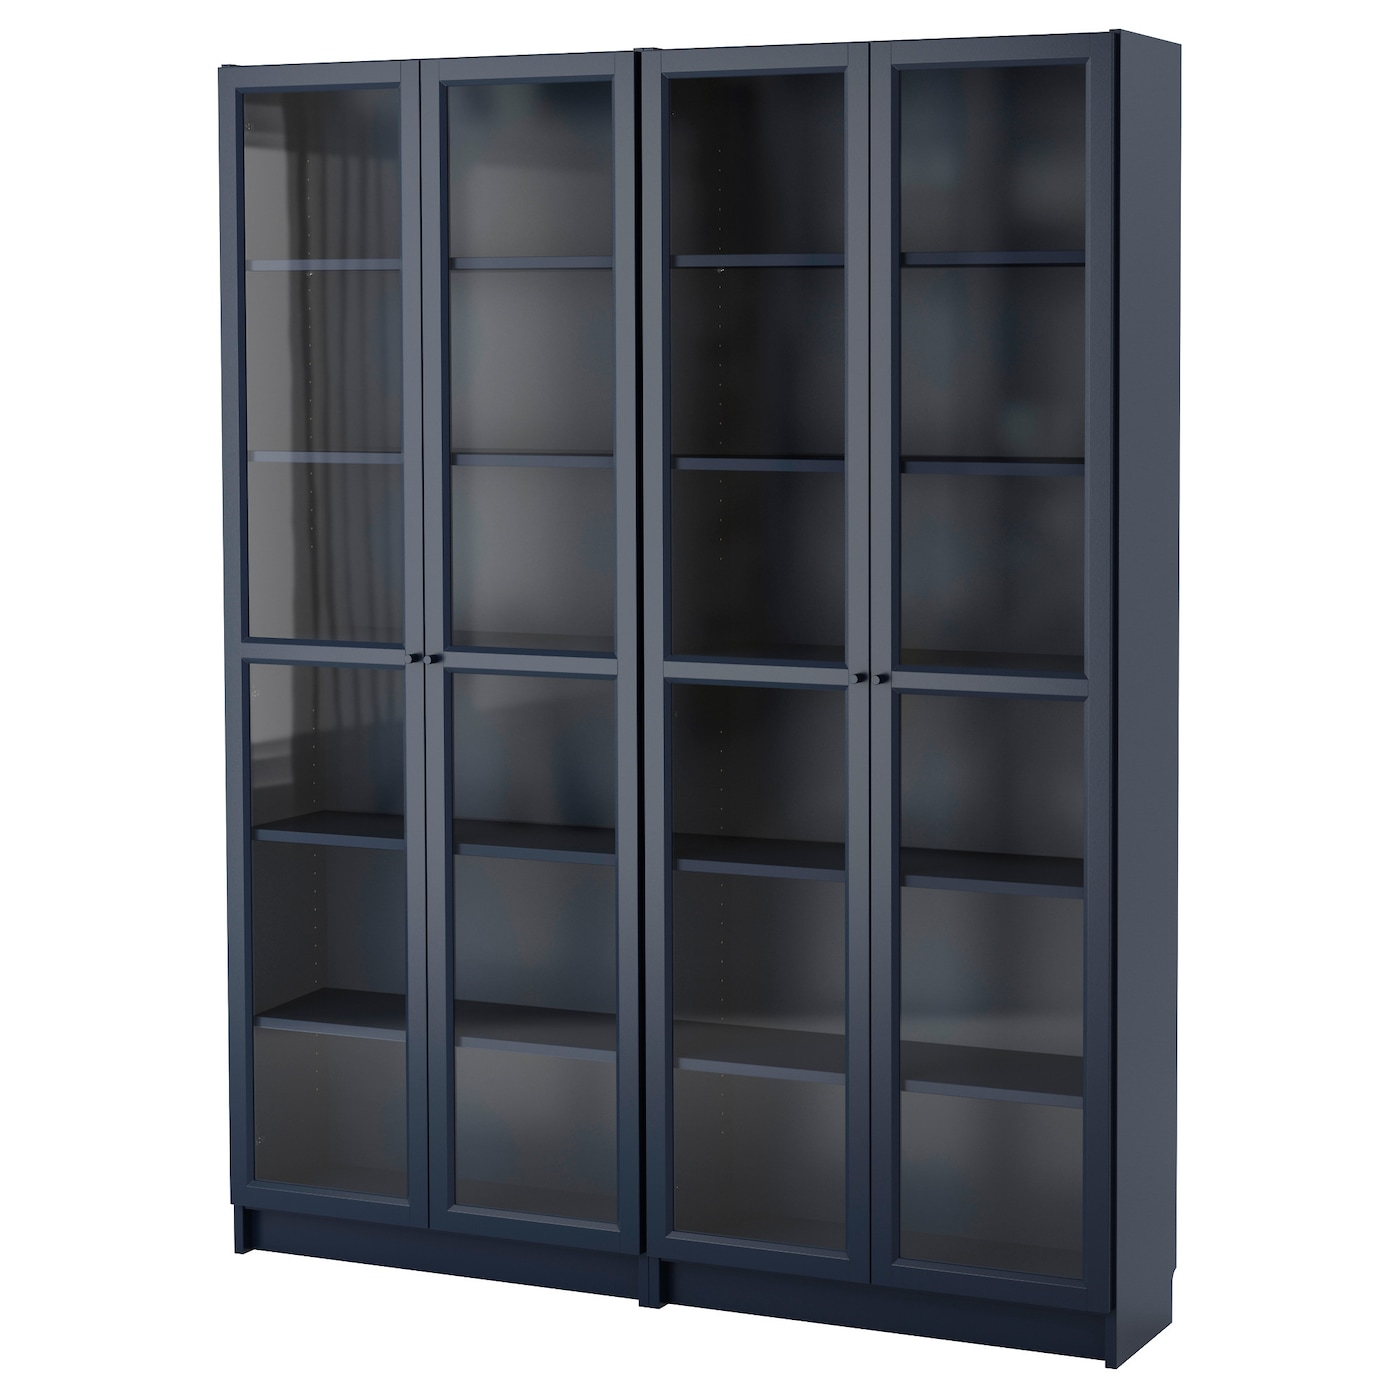 Dvd Shelf Ikea Home Design Ideas And Pictures # Muebles Billy Ikea